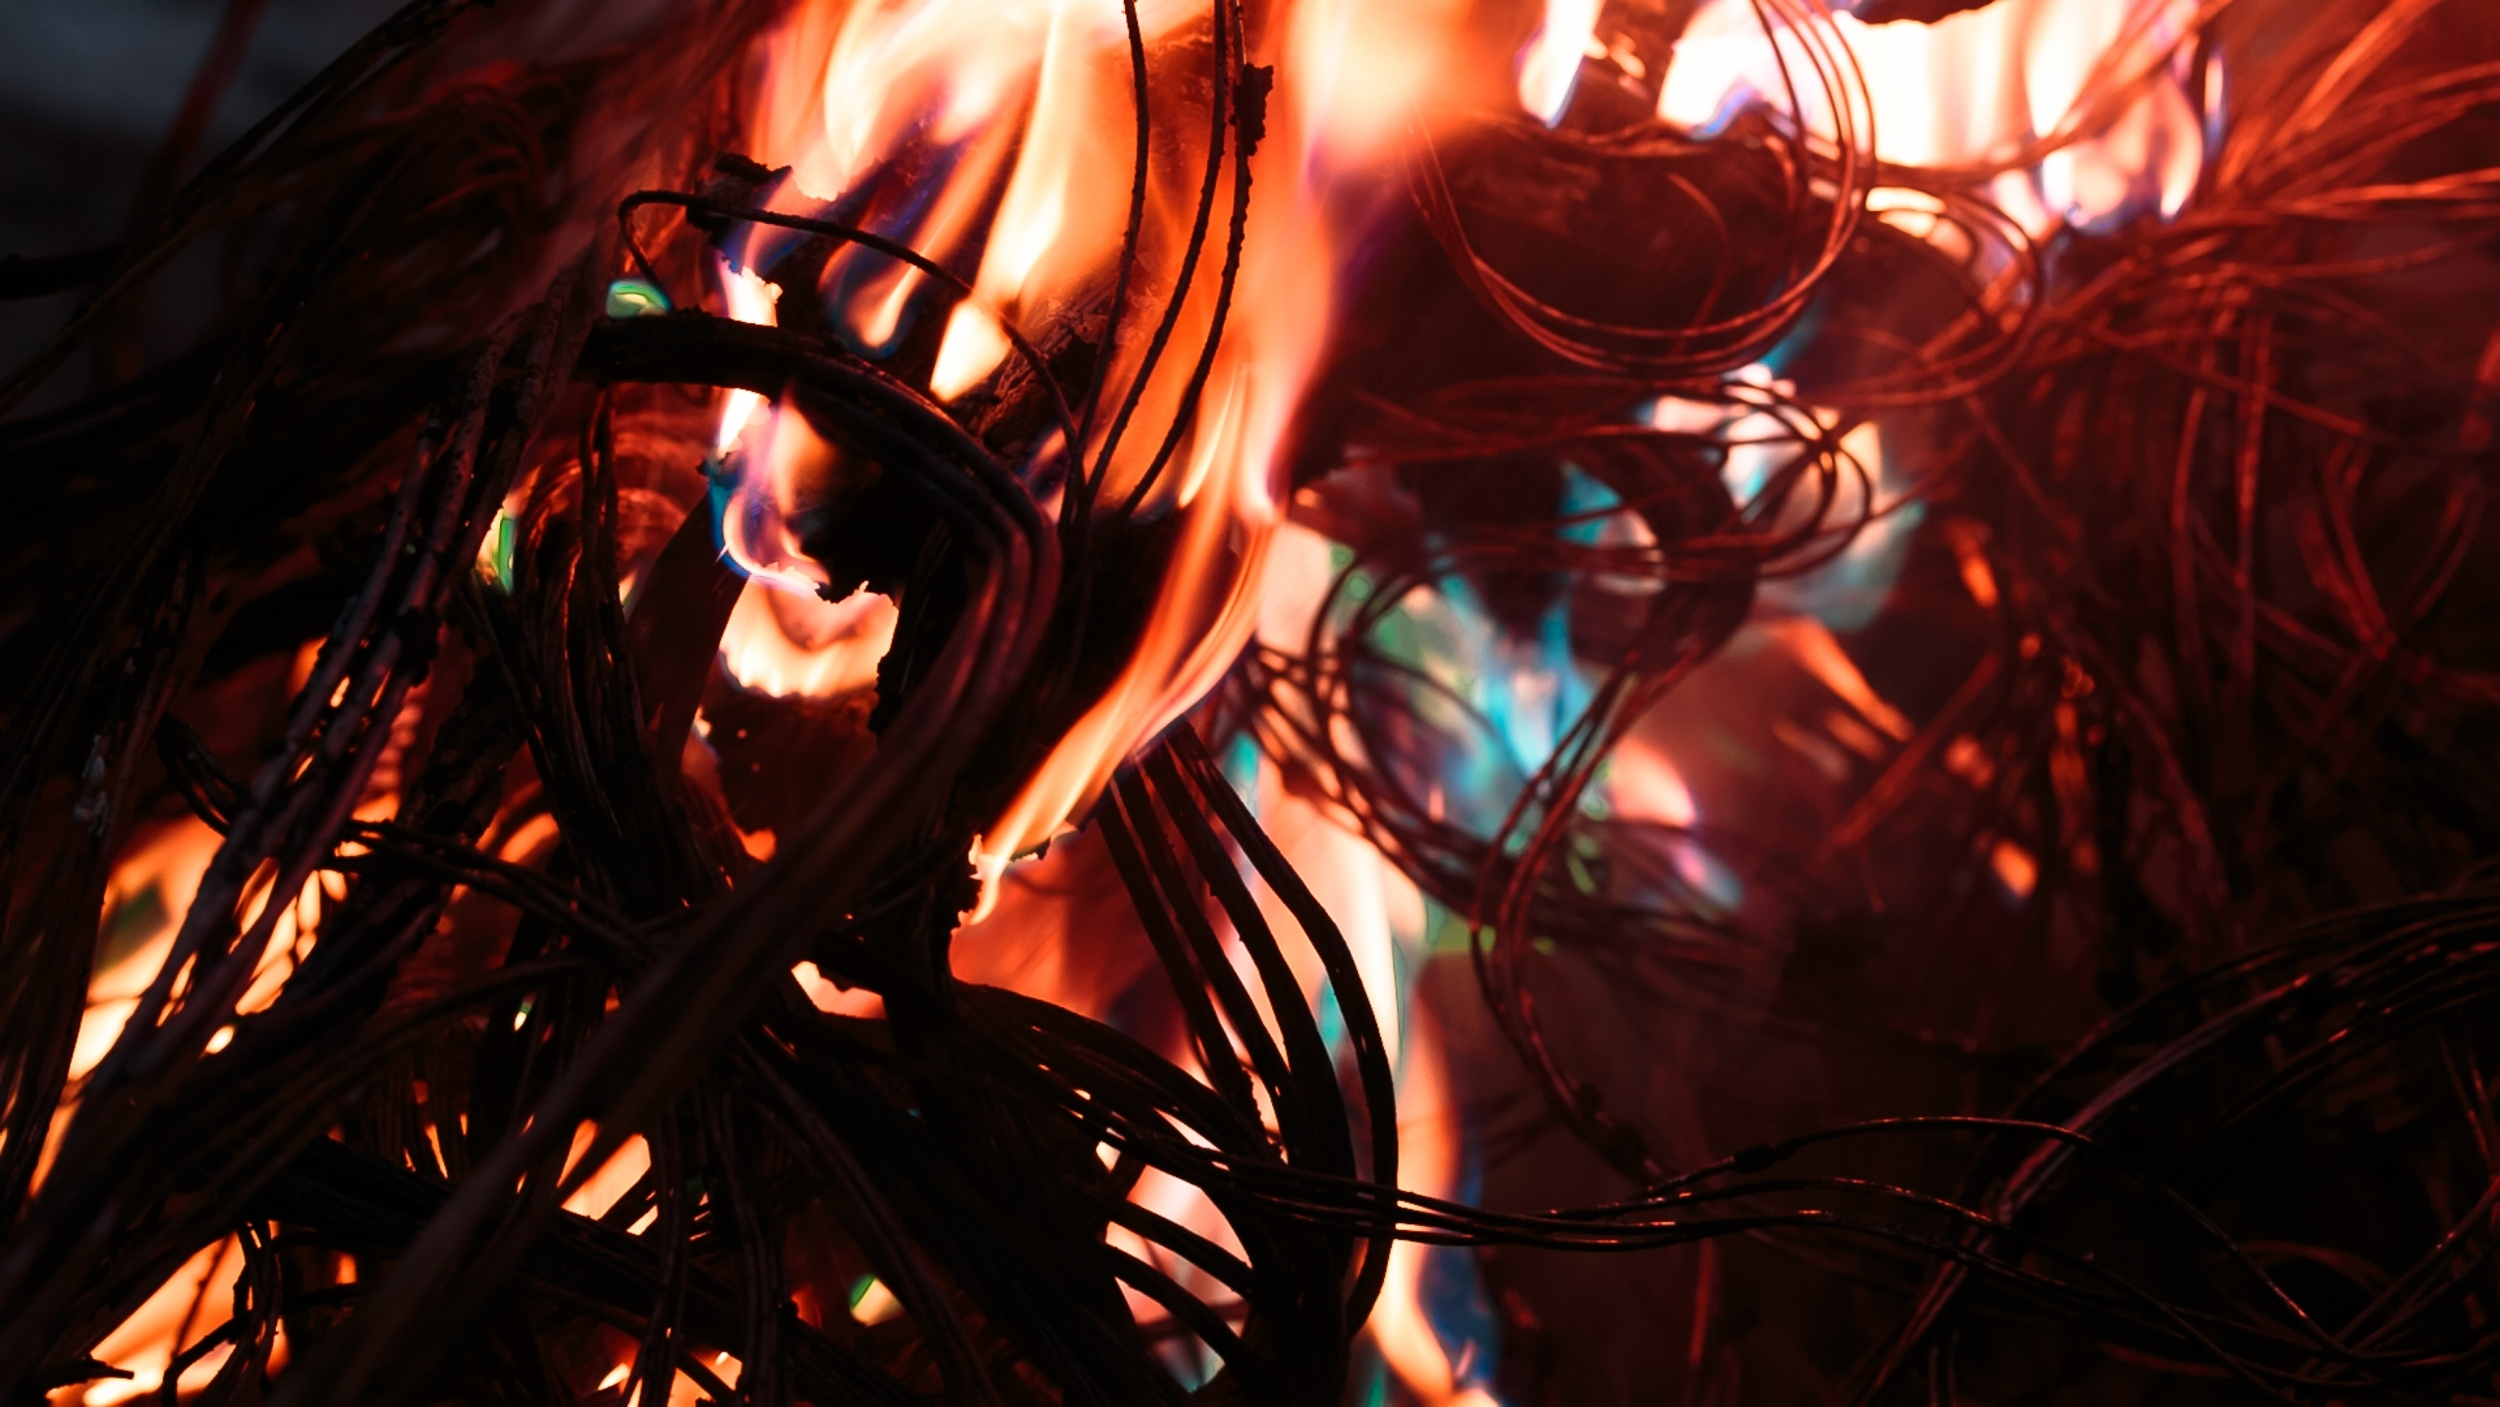 shutterstock_558114553-cables-on-fire.jpg